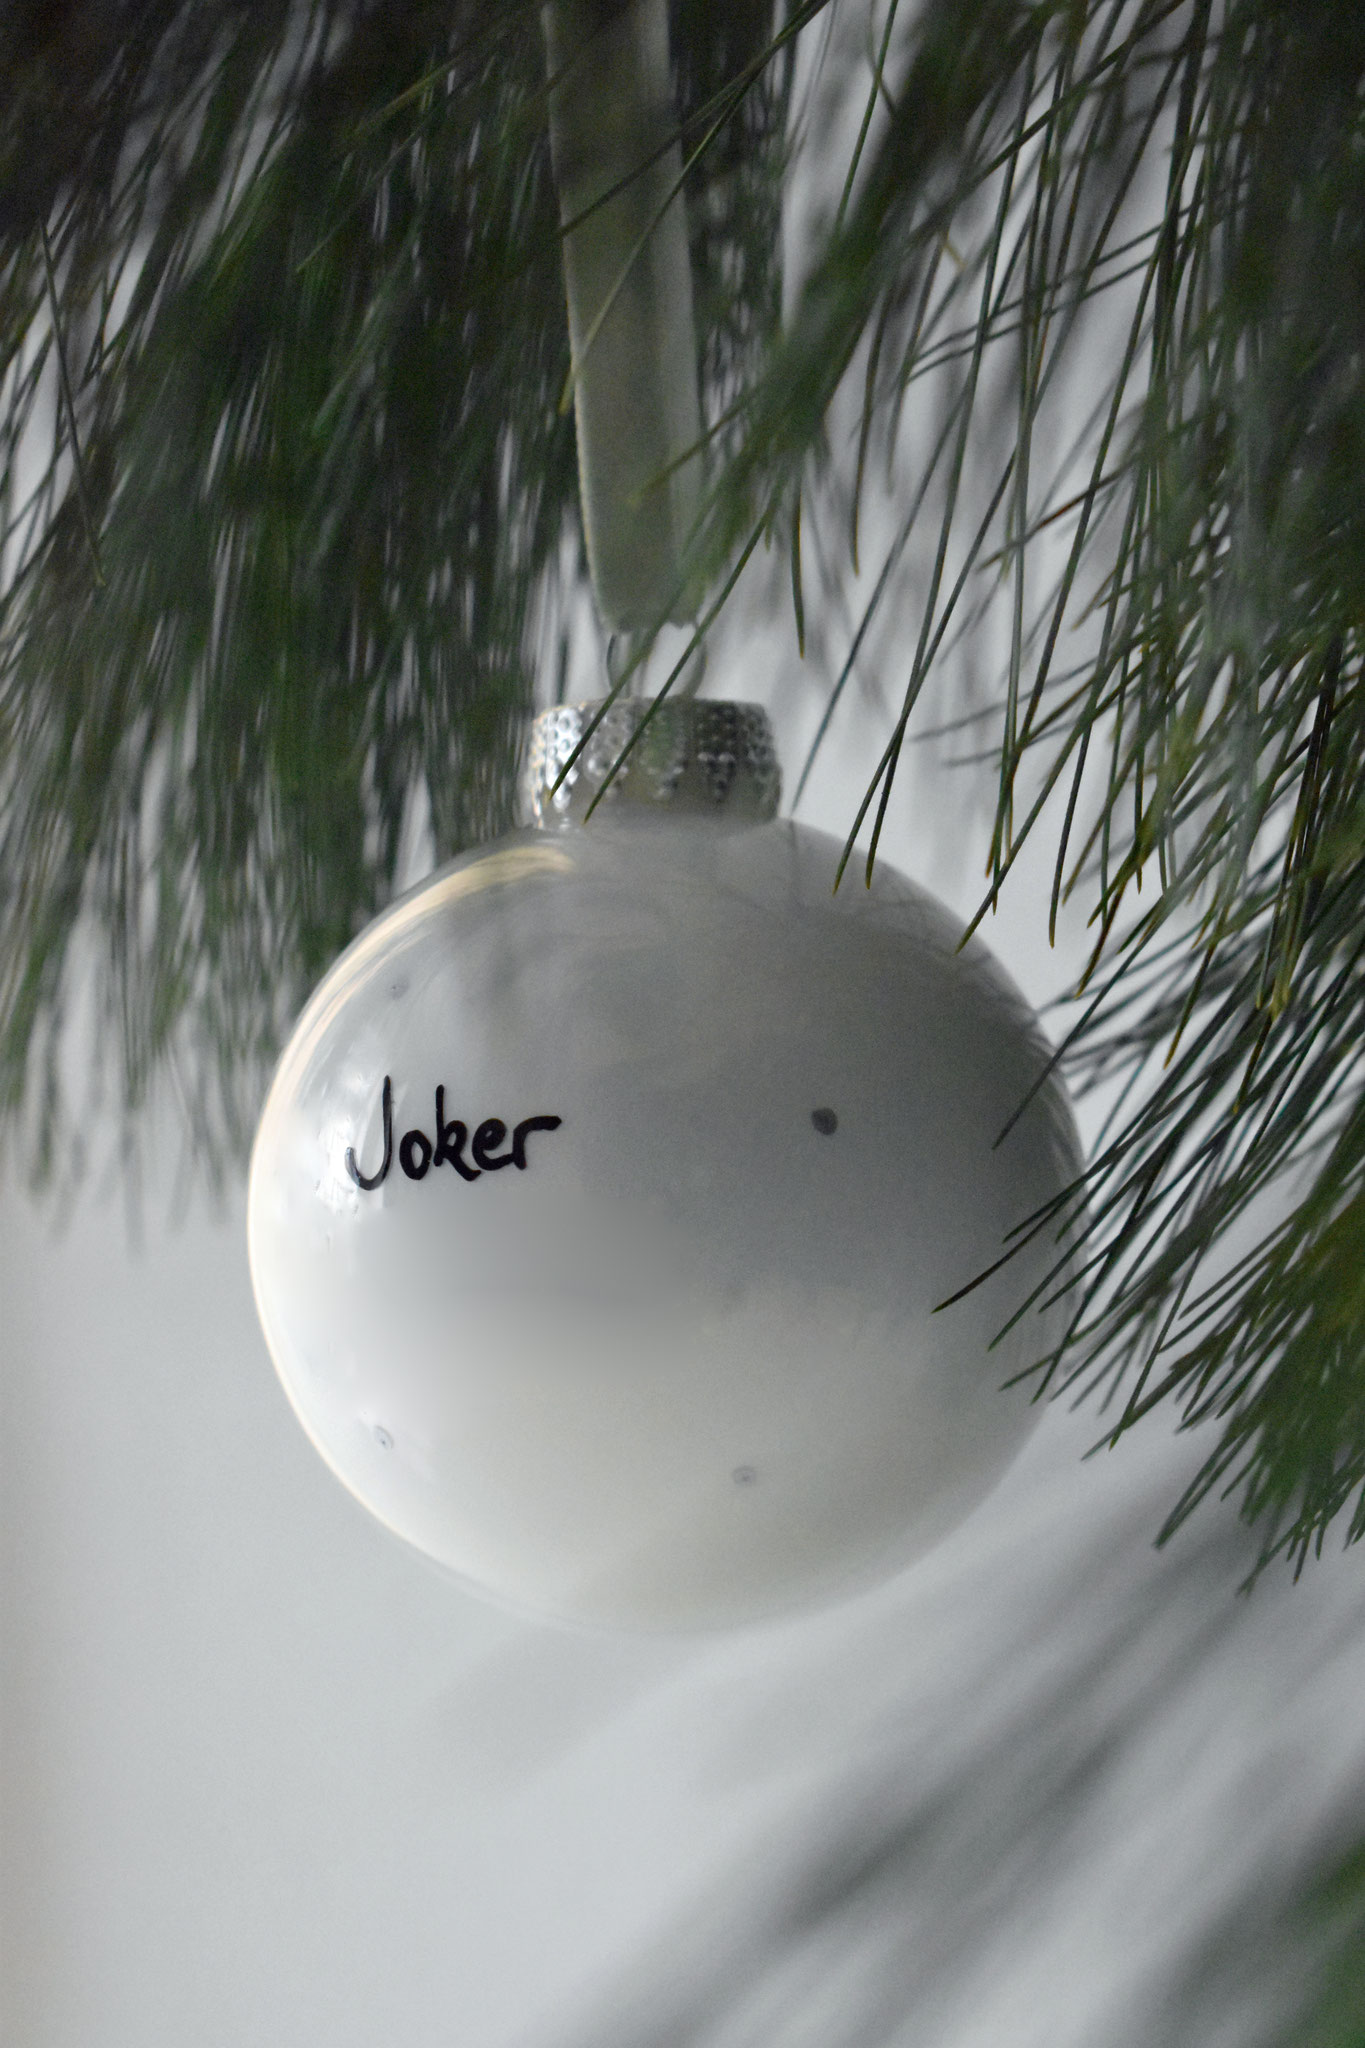 """Joker"" glass Christmas ornament, ∅ 8 cm 